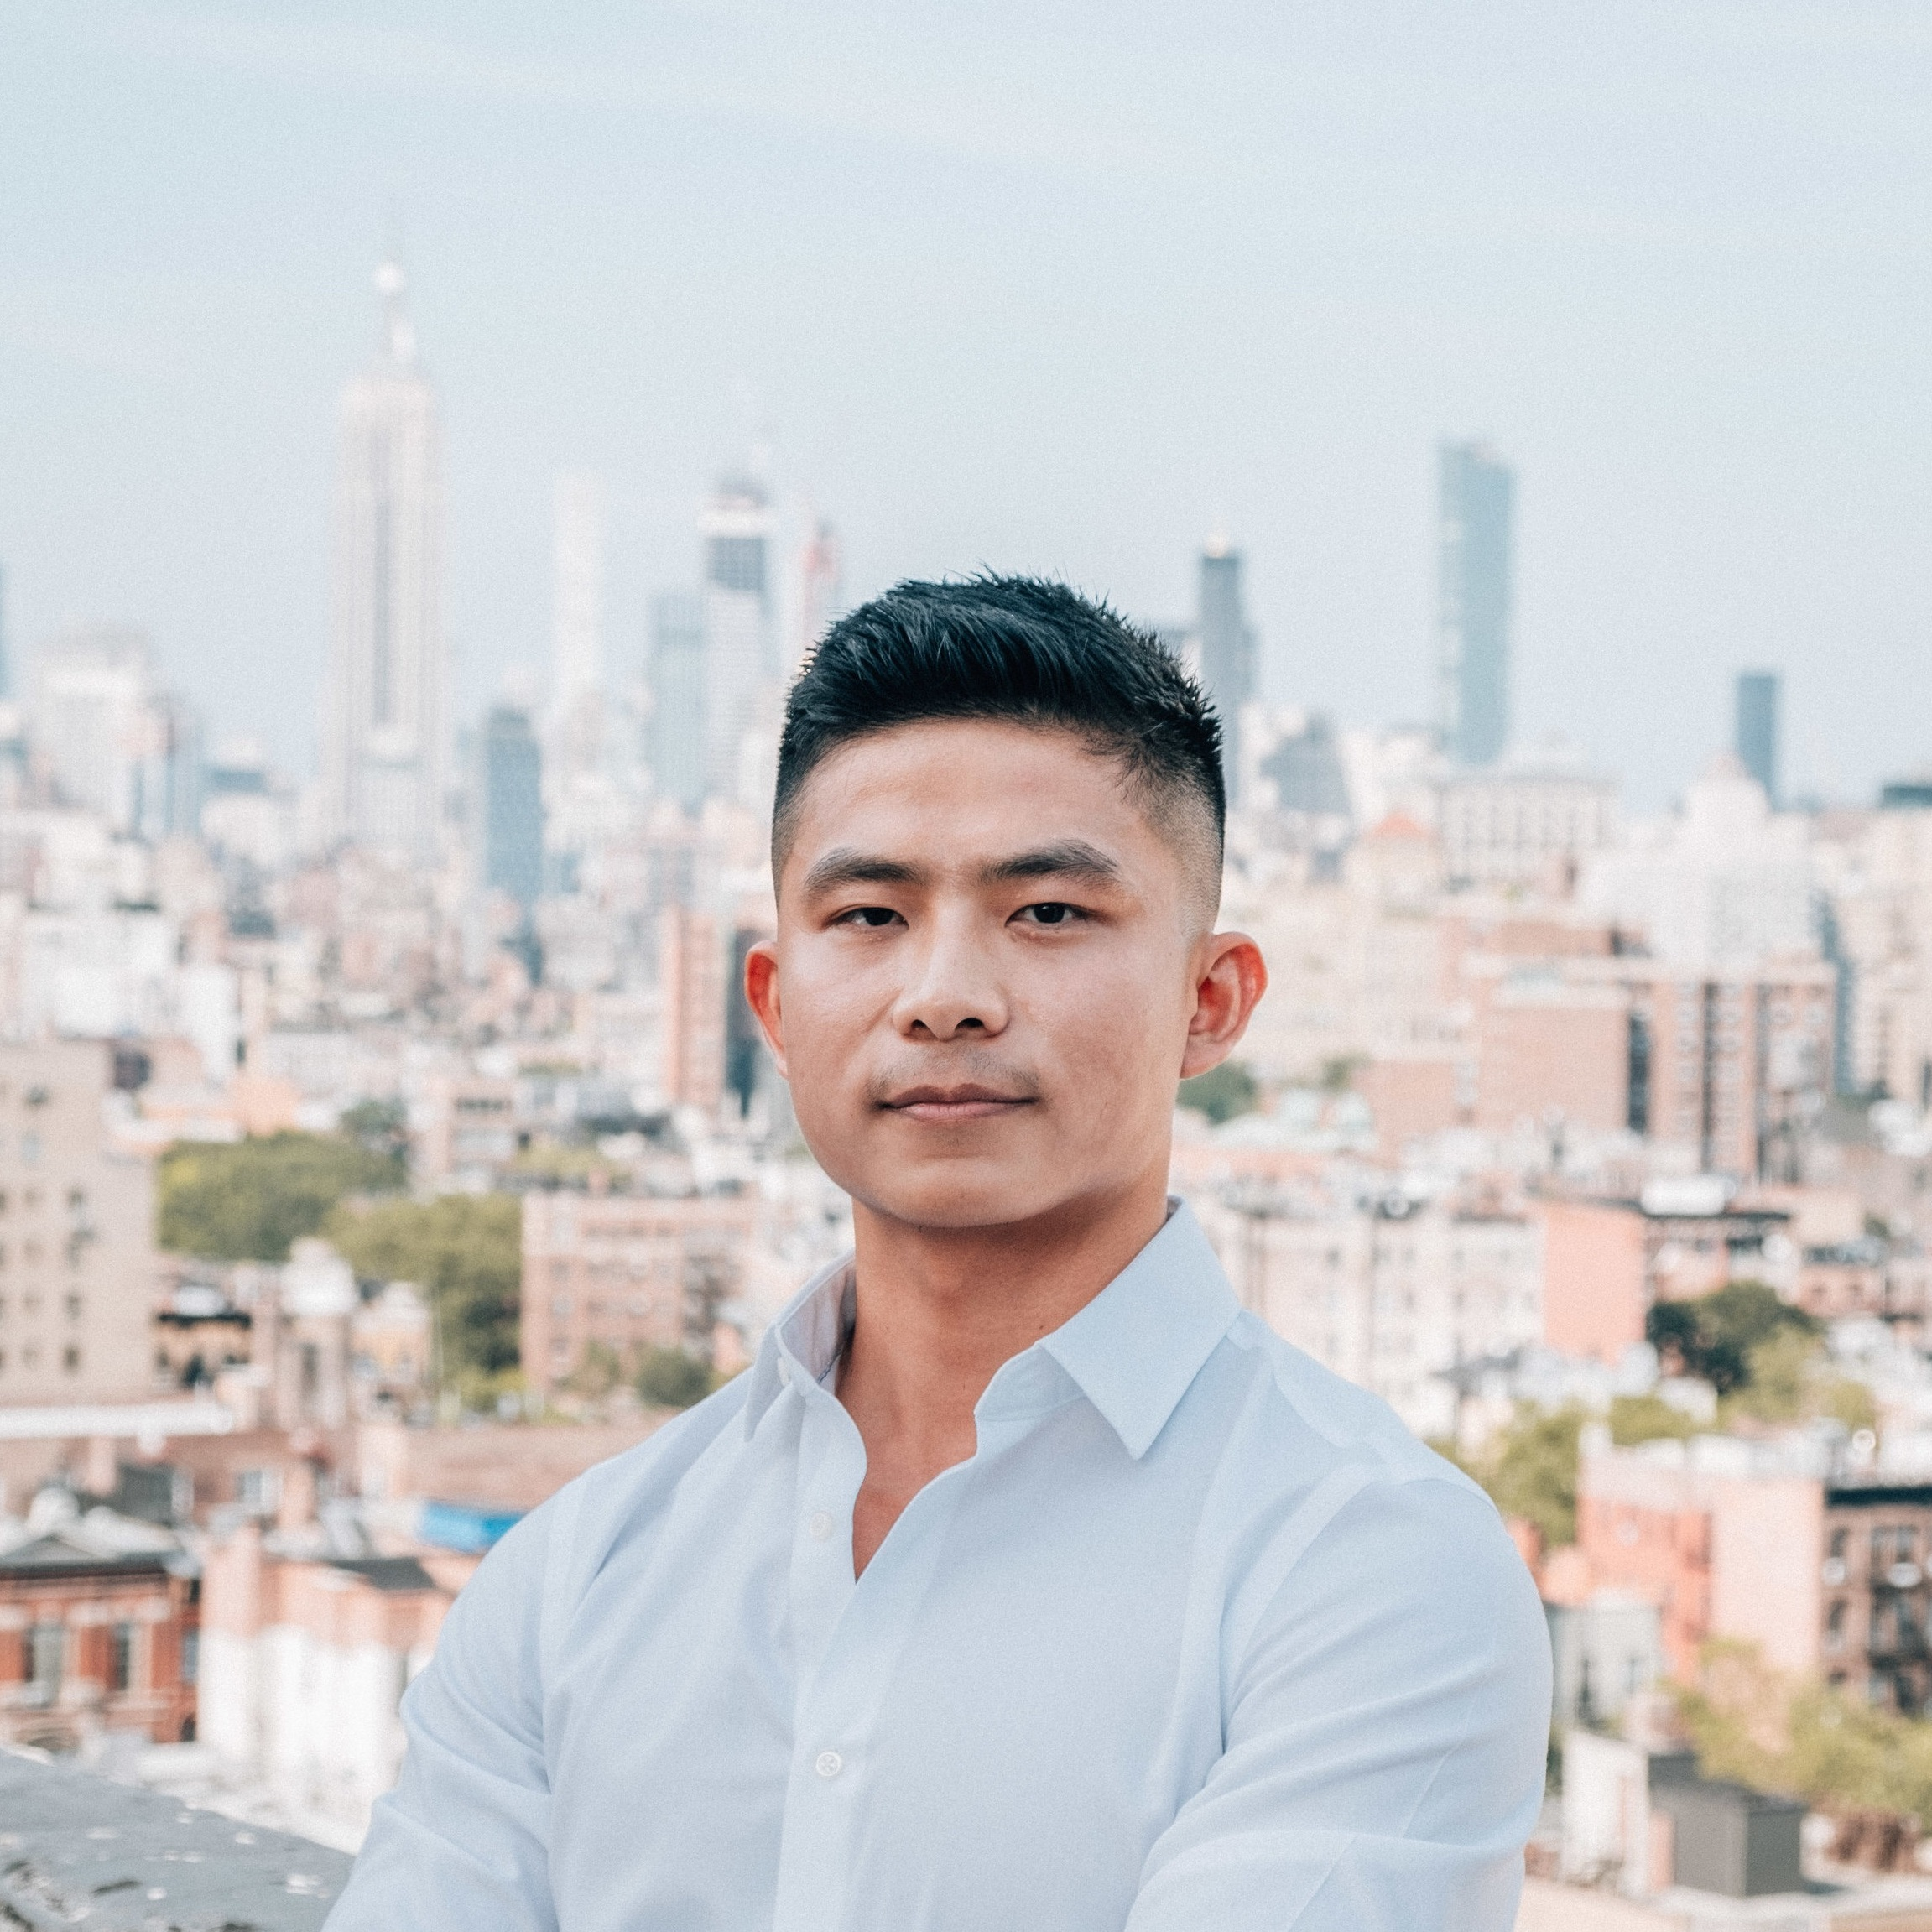 Qi Tong - Architectural Designerqtong@inc.nycQi Tong is a Job Captain at INC with experience in both architectural and interior design. He was born and raised in China then moved to United States and received his Master's degree in Architecture at University of Pennsylvania in 2015. Since graduating, Qi has worked in New York City gaining experience from conception to realization on a wide variety of project types, including residential, hospitality, office, and laboratory projects. Challenging himself to maintain critical attention to innovation and detail in his research and design decisions has guided him in comprehending the role of design in society.